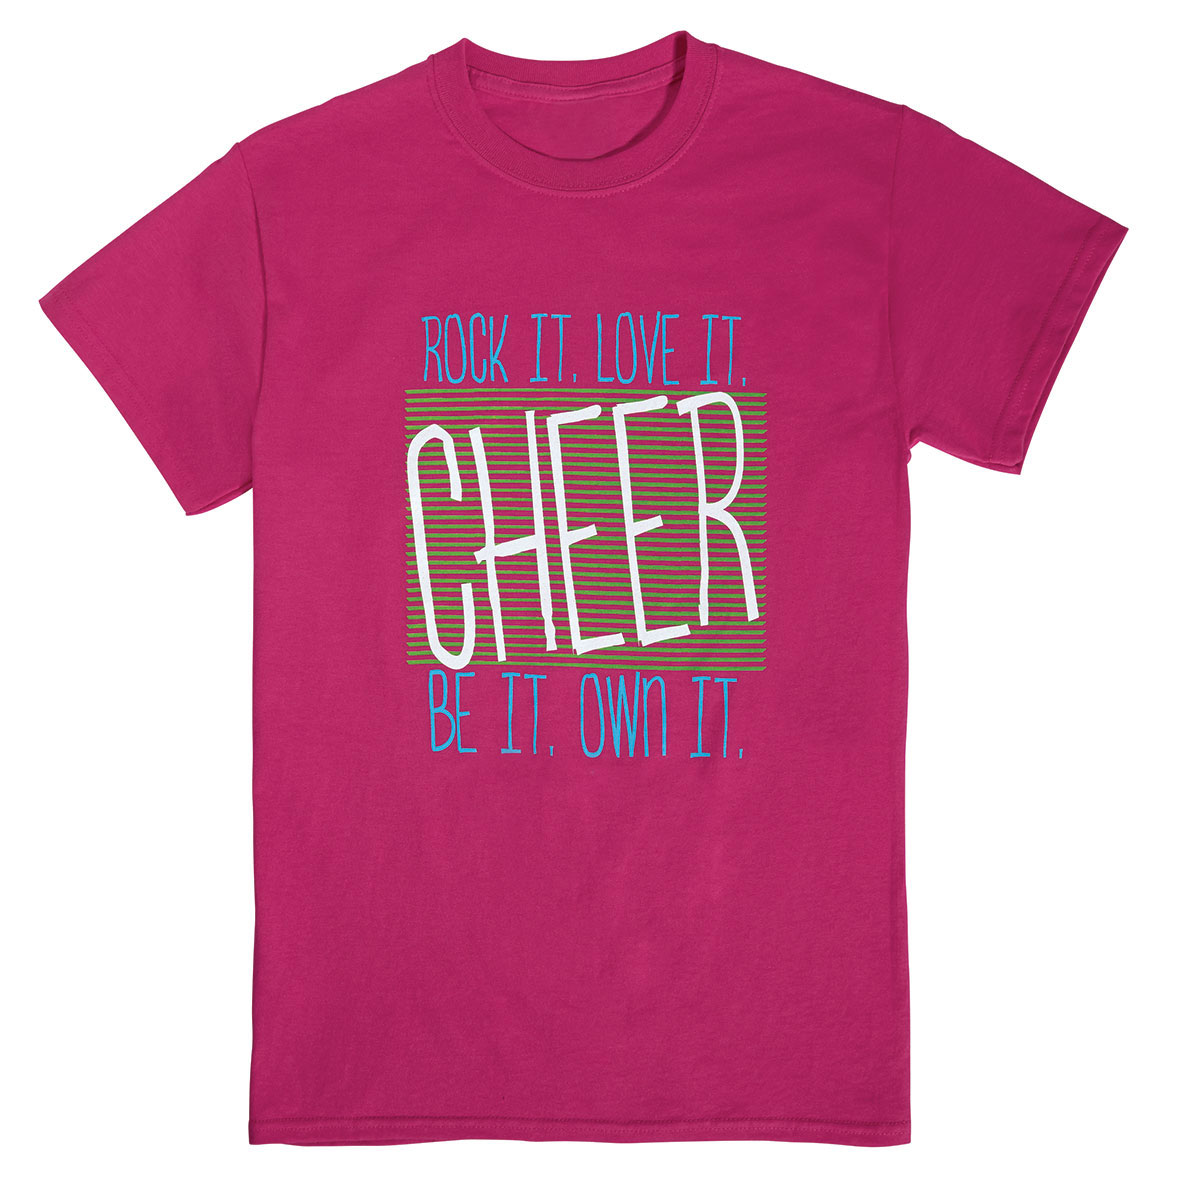 Cheer shirts t shirts design concept Cheerleading t shirt designs